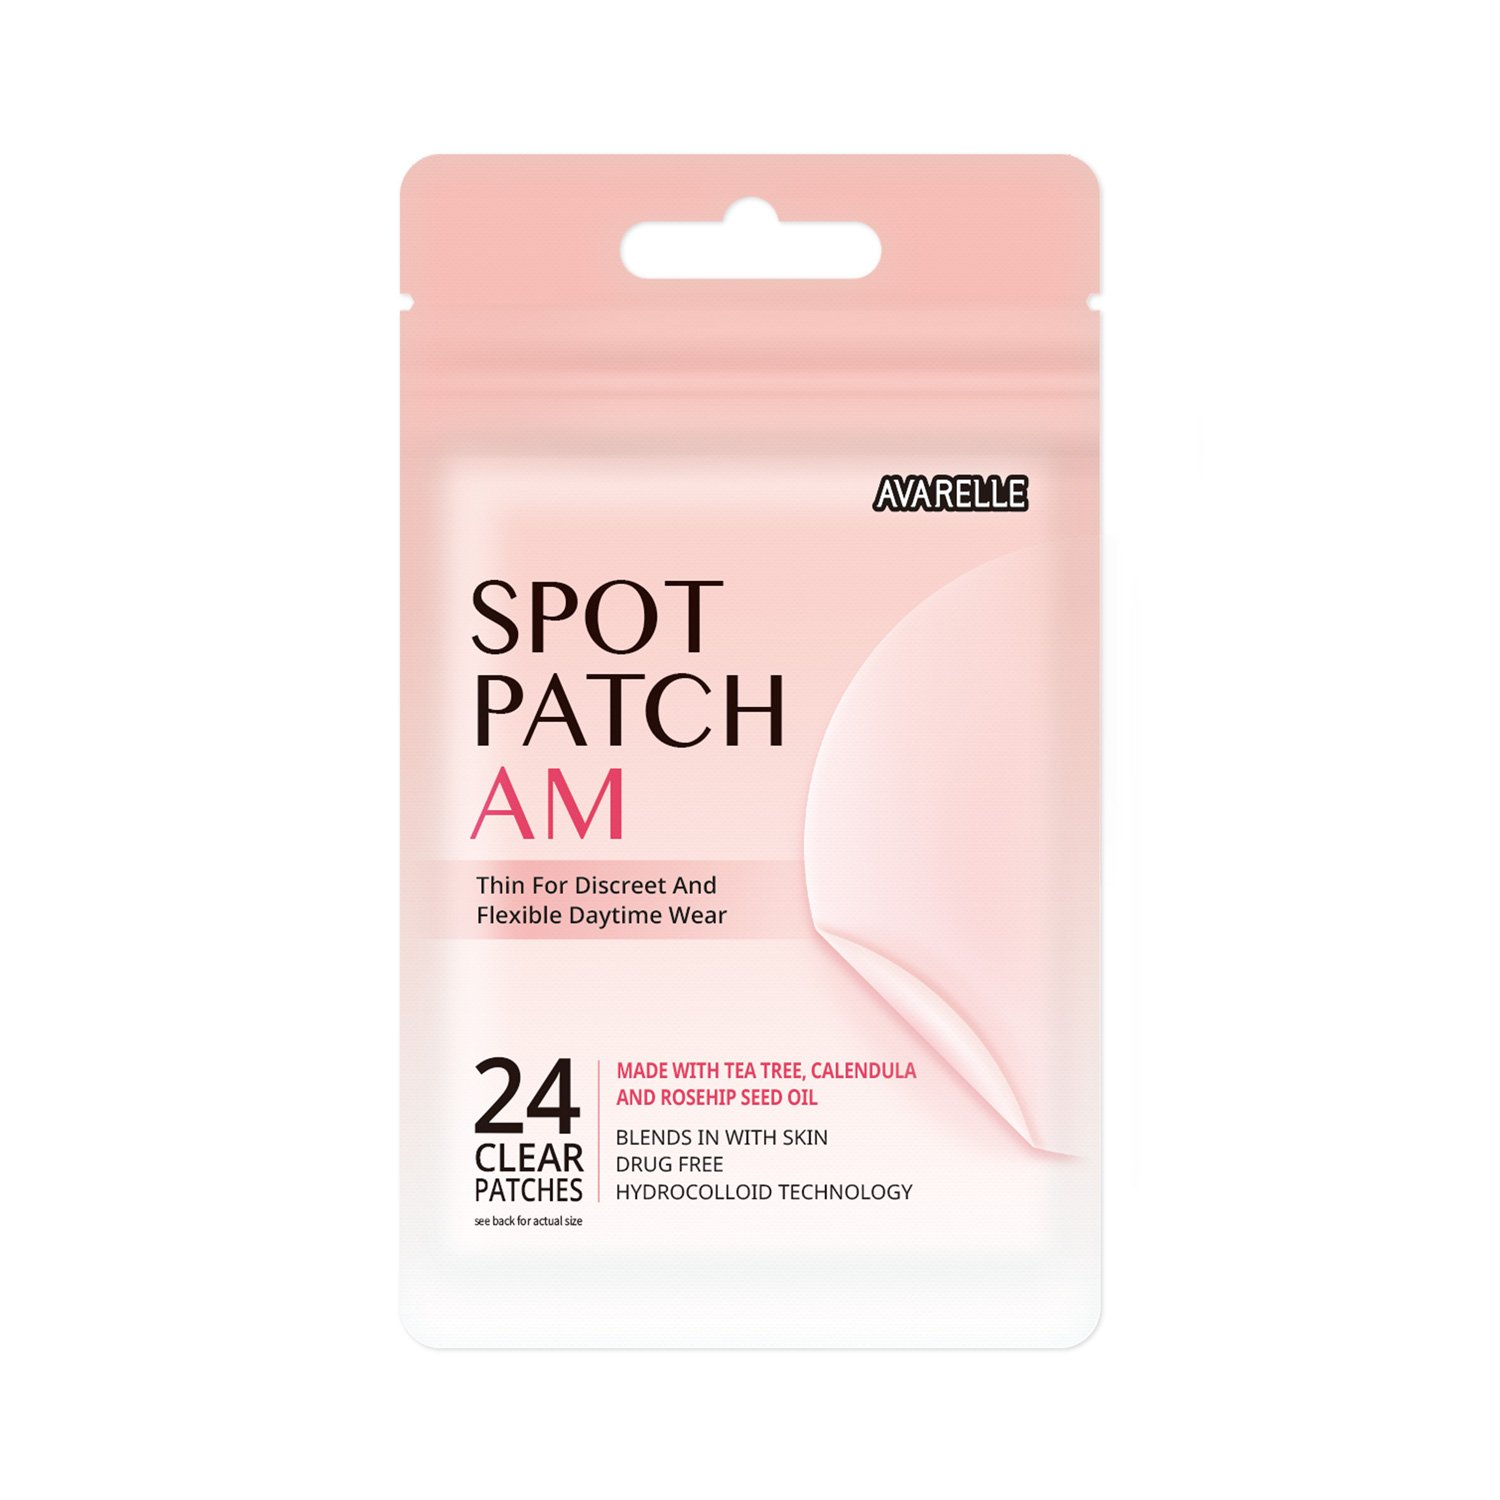 Acne Spot Patch AM Daytime Hydrocolloid With Essential Oils (24 Count)